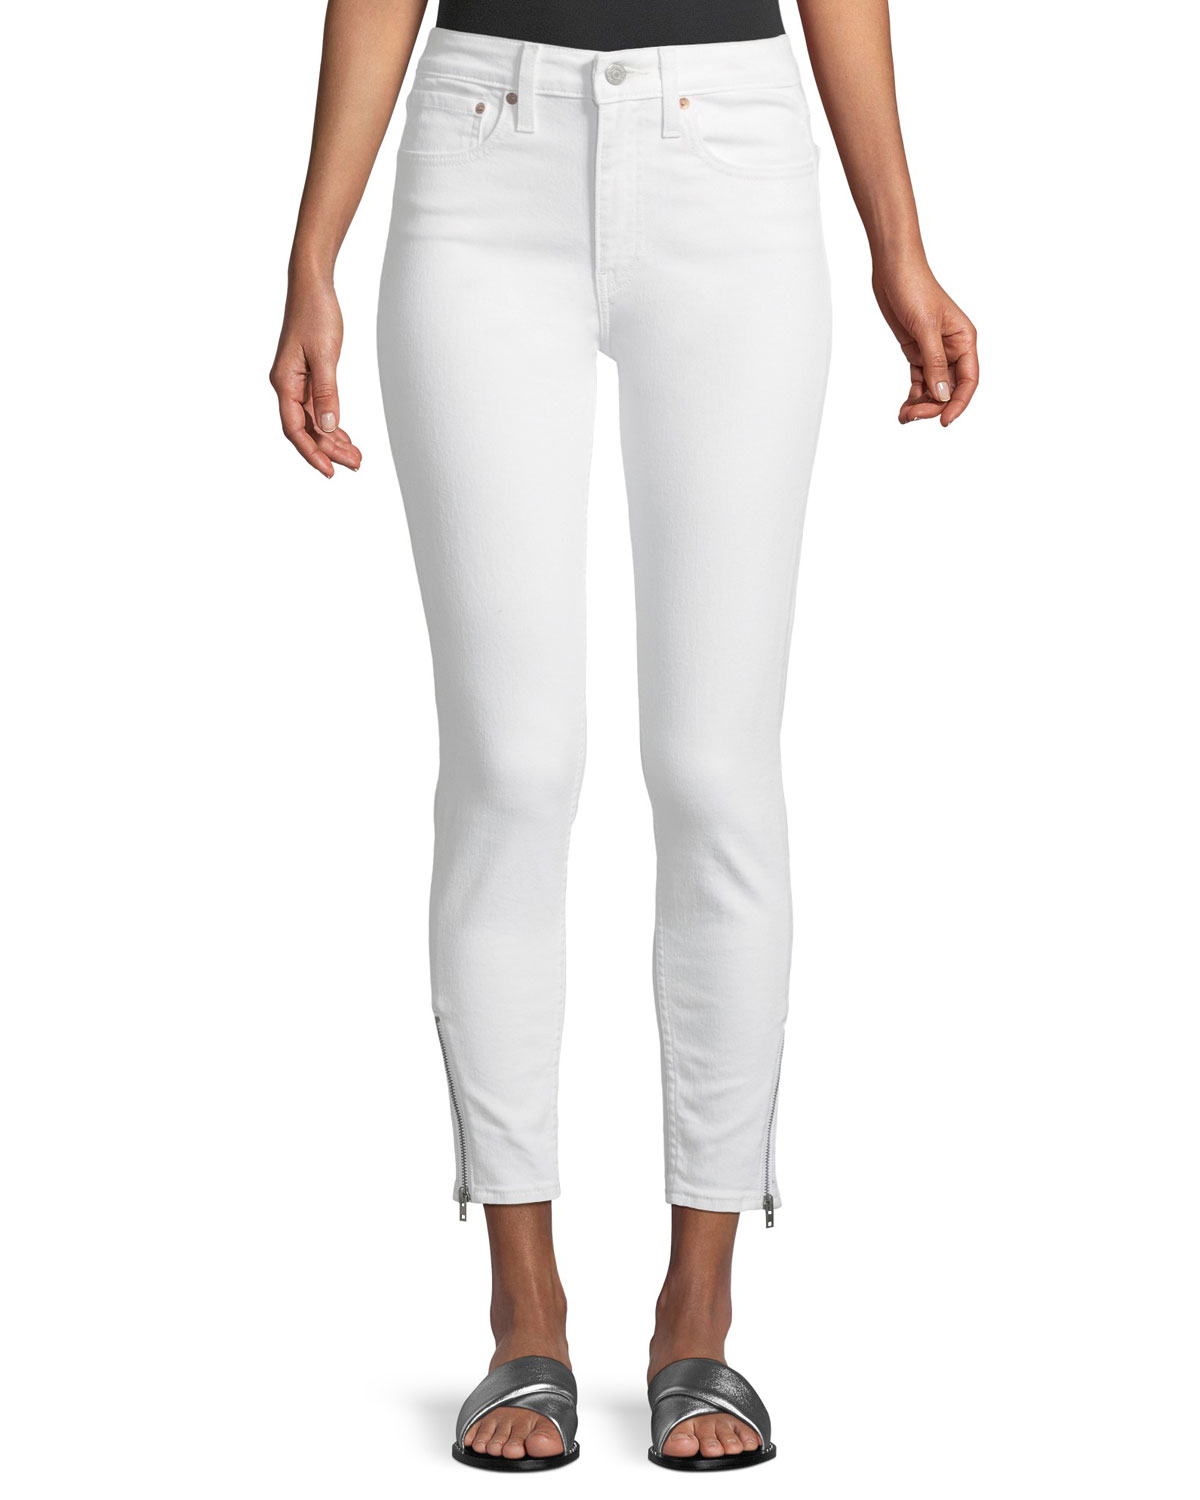 721 Altered High-Rise Side-Zip Skinny-Leg Jeans